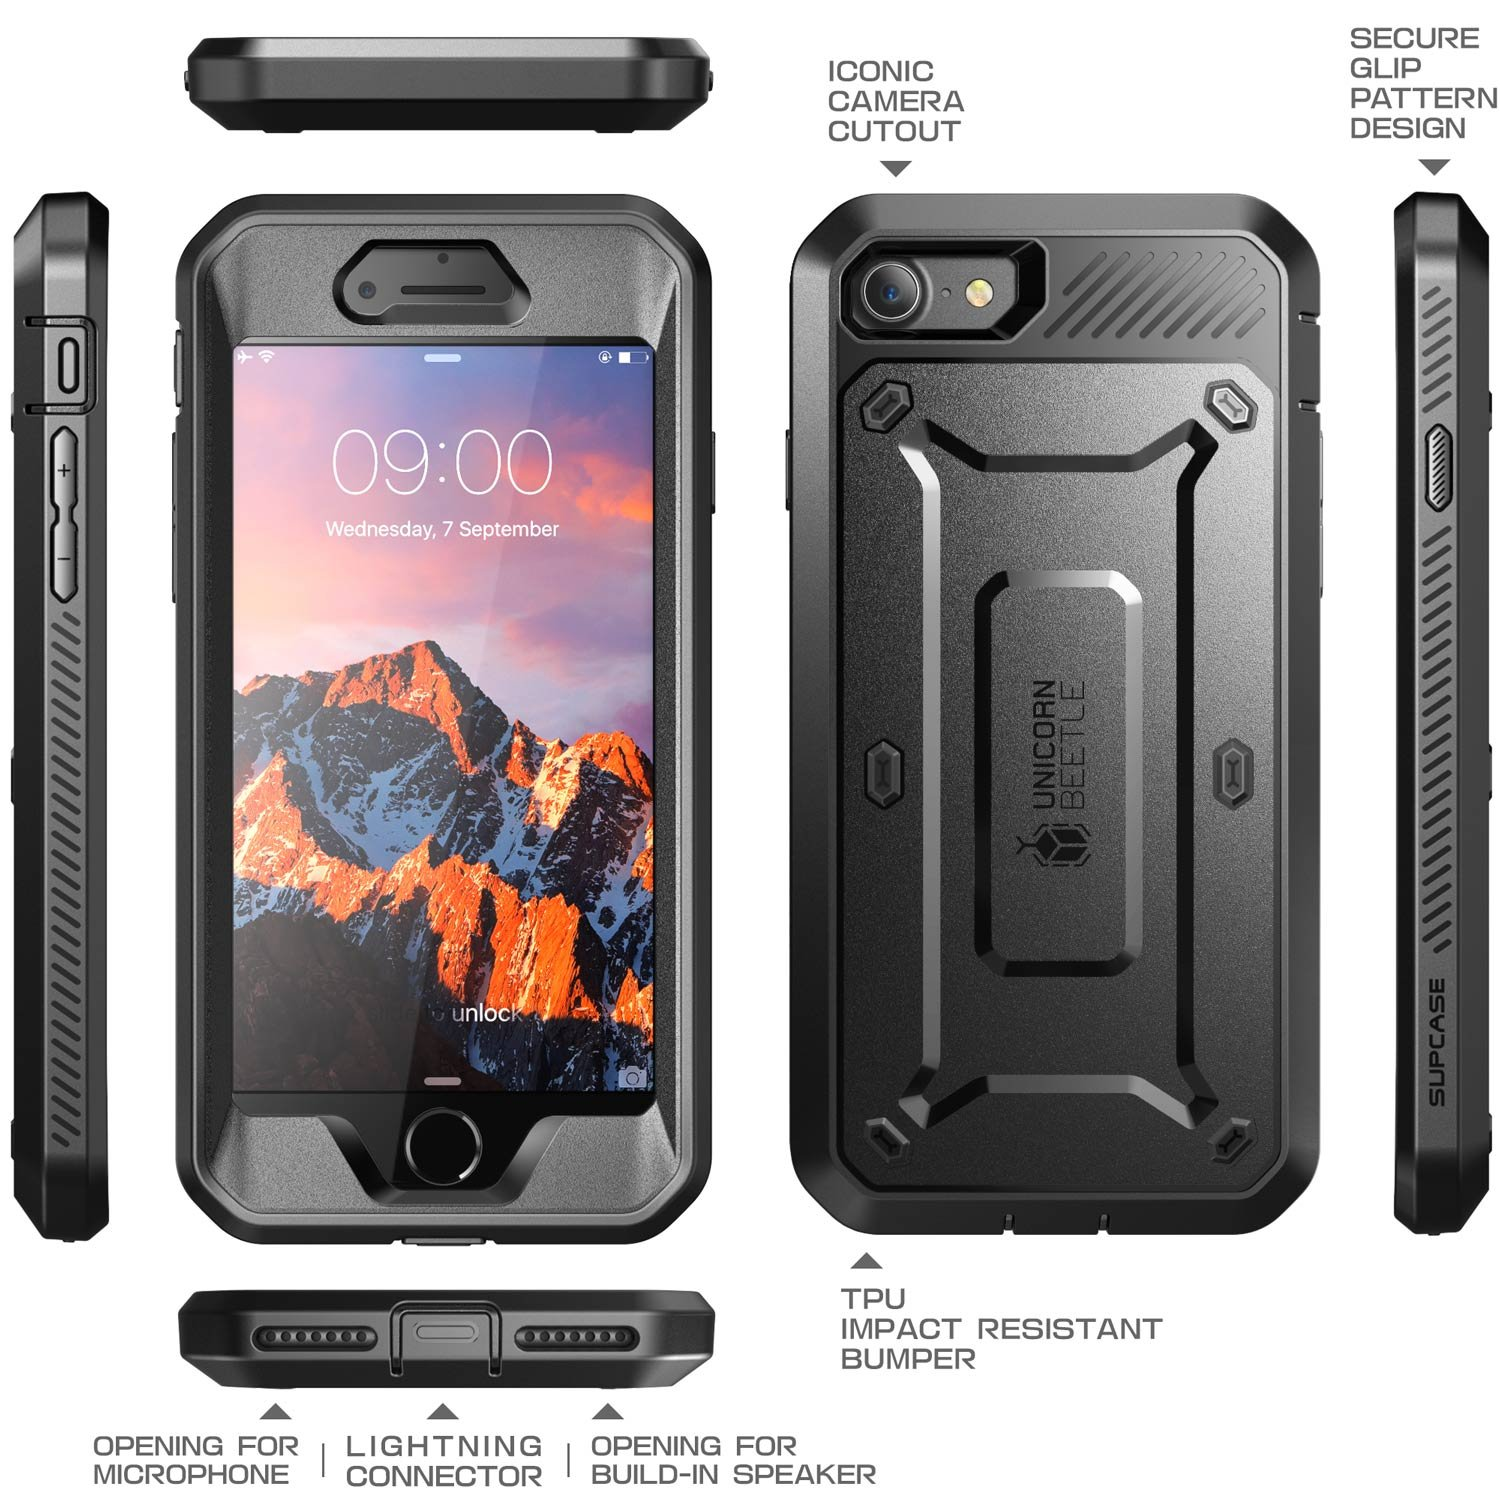 iPhone 8 Case, SUPCASE Full-body Rugged Holster Case with Built-in Screen Protector for Apple iPhone 7 2016/iPhone 8 (2017 Release), Unicorn Beetle PRO Series - Retail Package (Black/Black) by SUPCASE (Image #3)